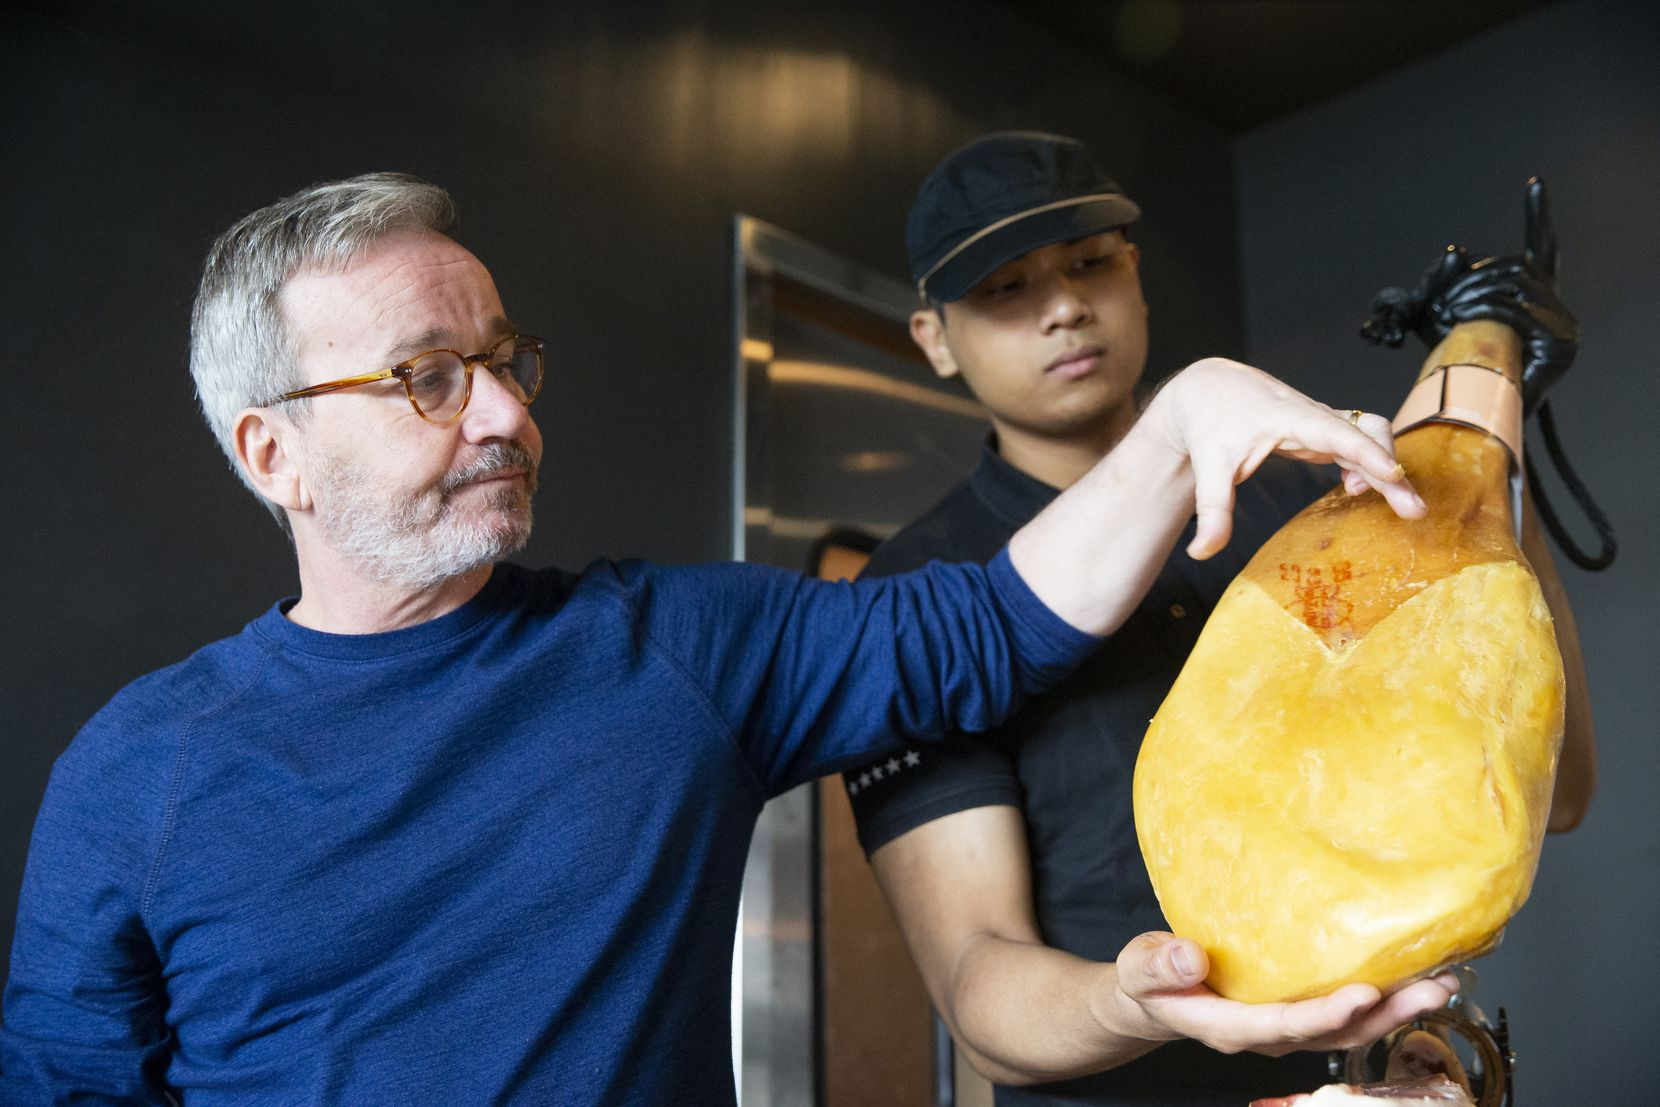 Maestro jamoneros Xavi Bru (left) and Spike Comia teach new employees about the different hams at the new jamón Ibérico shop Enrique Tomas on Feb. 10, 2020 in Dallas. (Juan Figueroa/ The Dallas Morning News)